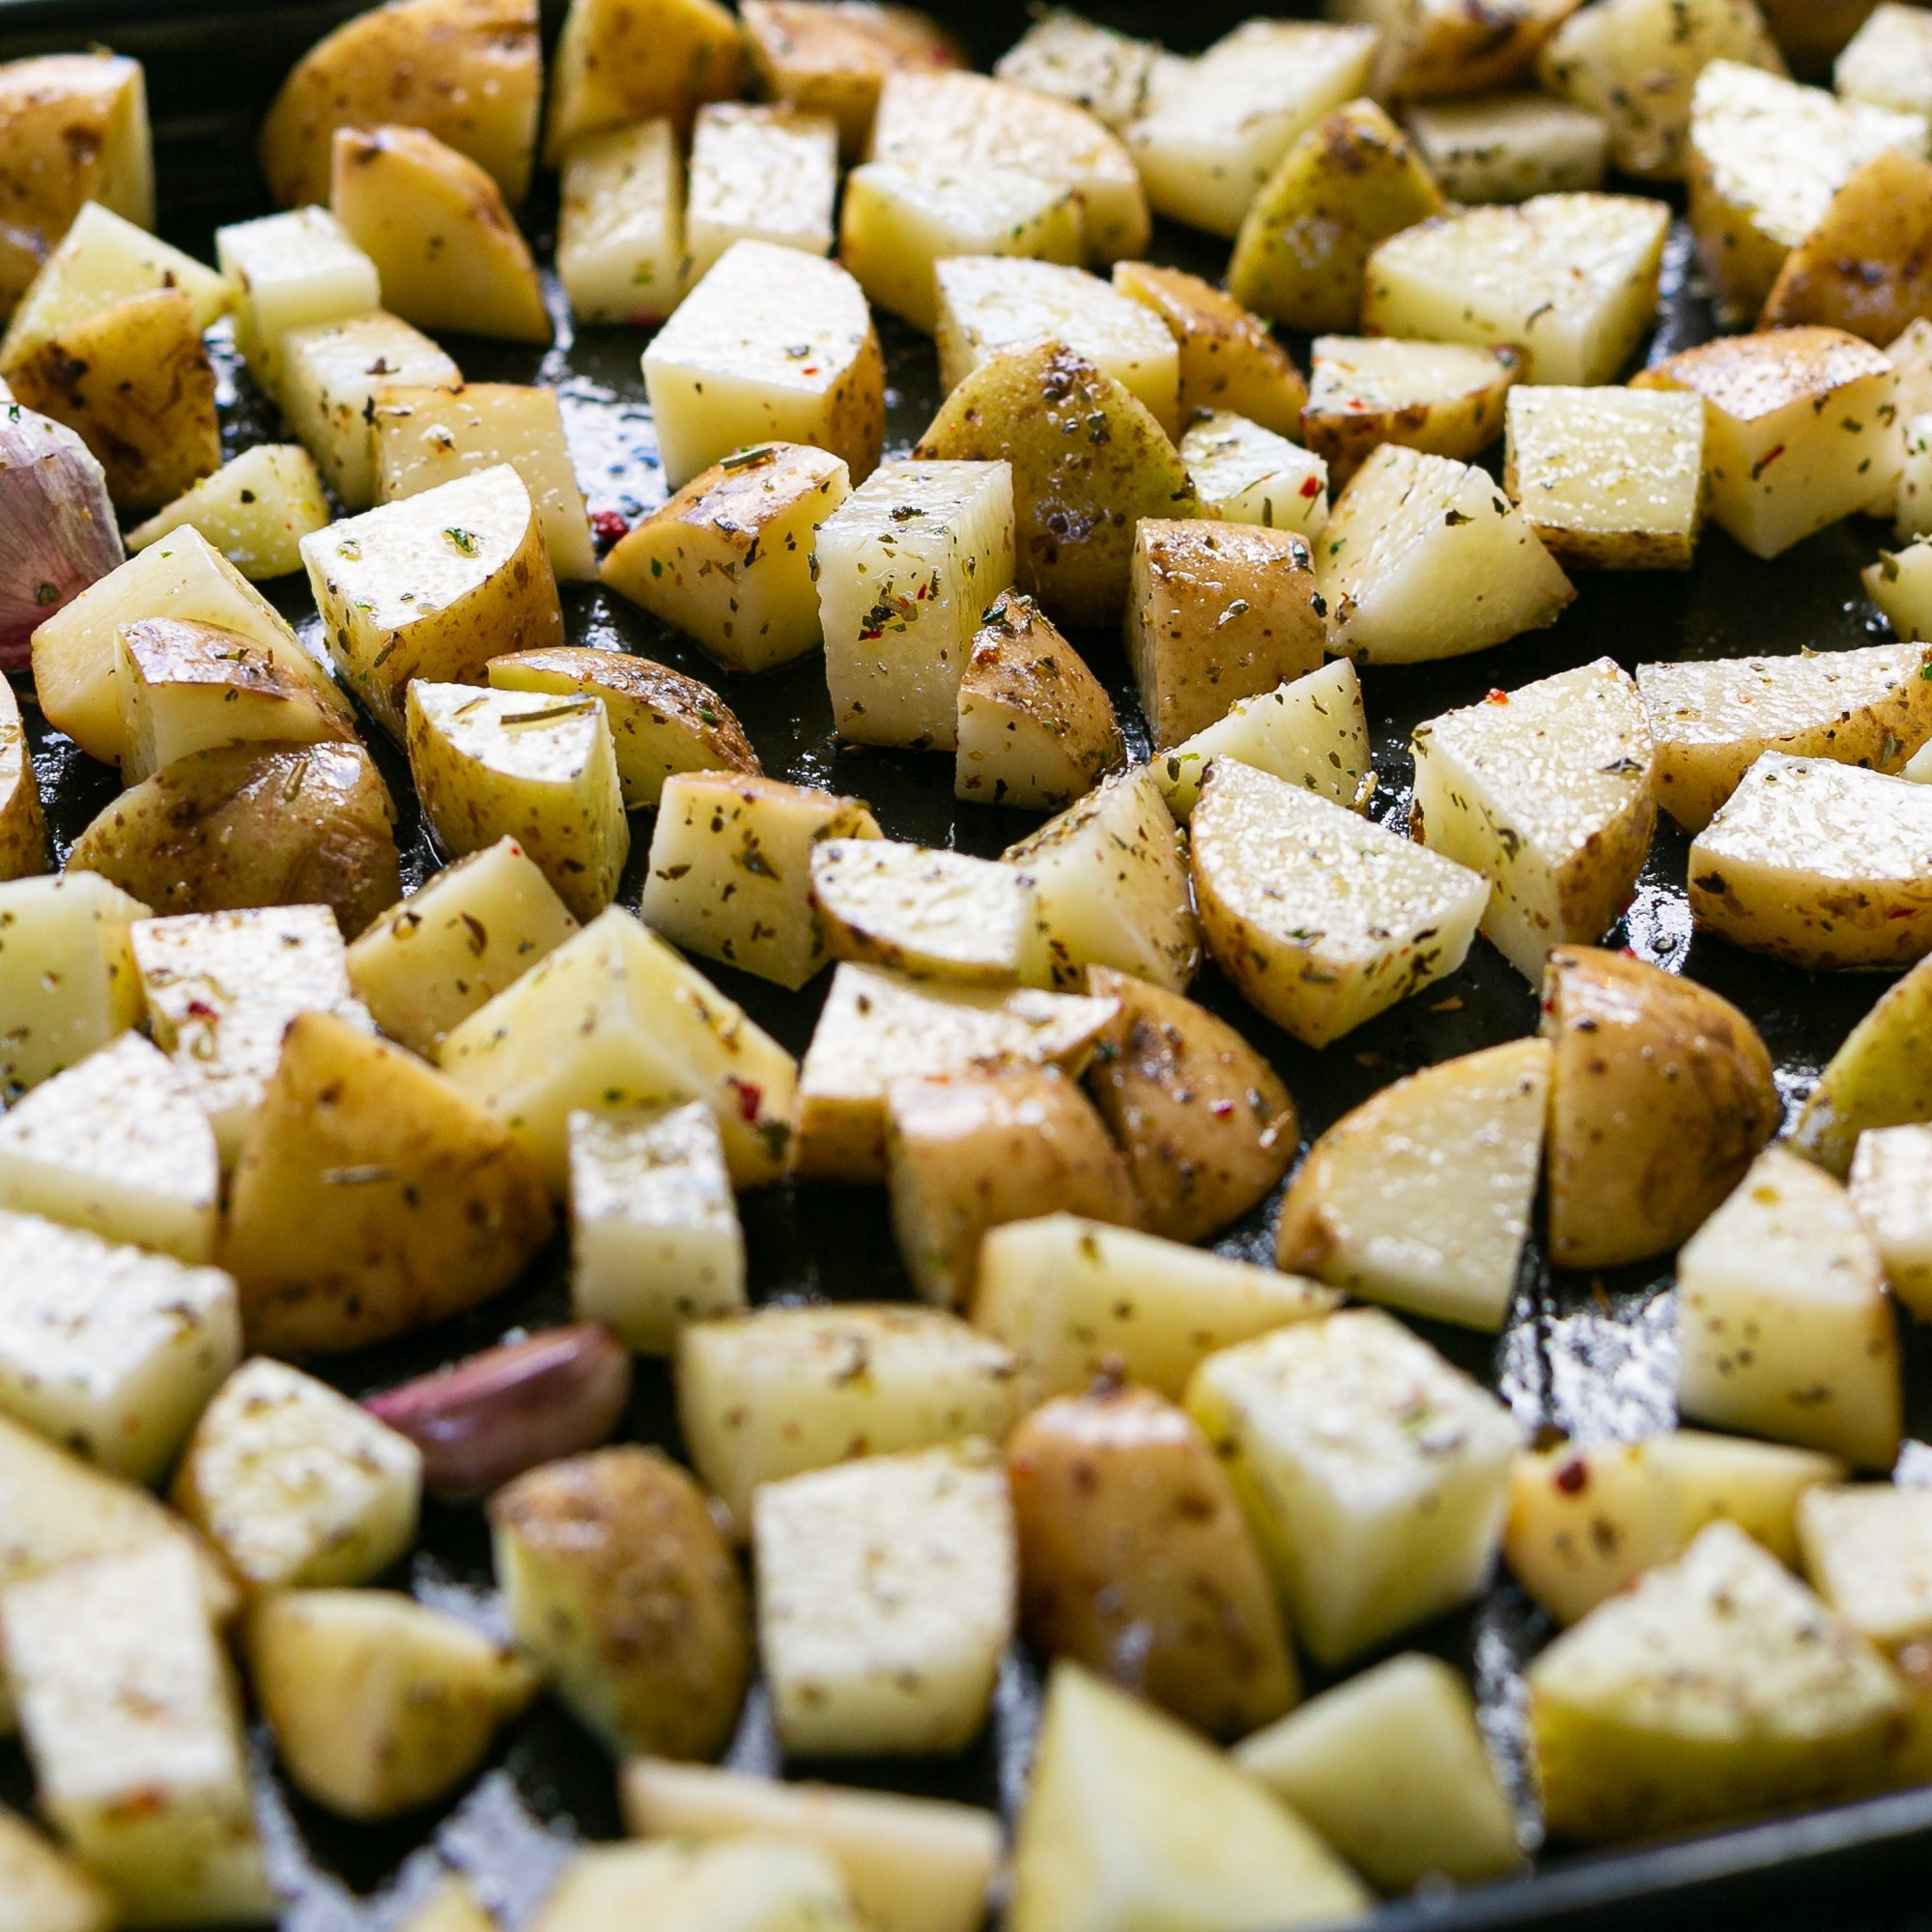 seasoned potato pieces on a baking sheet with garlic and oil